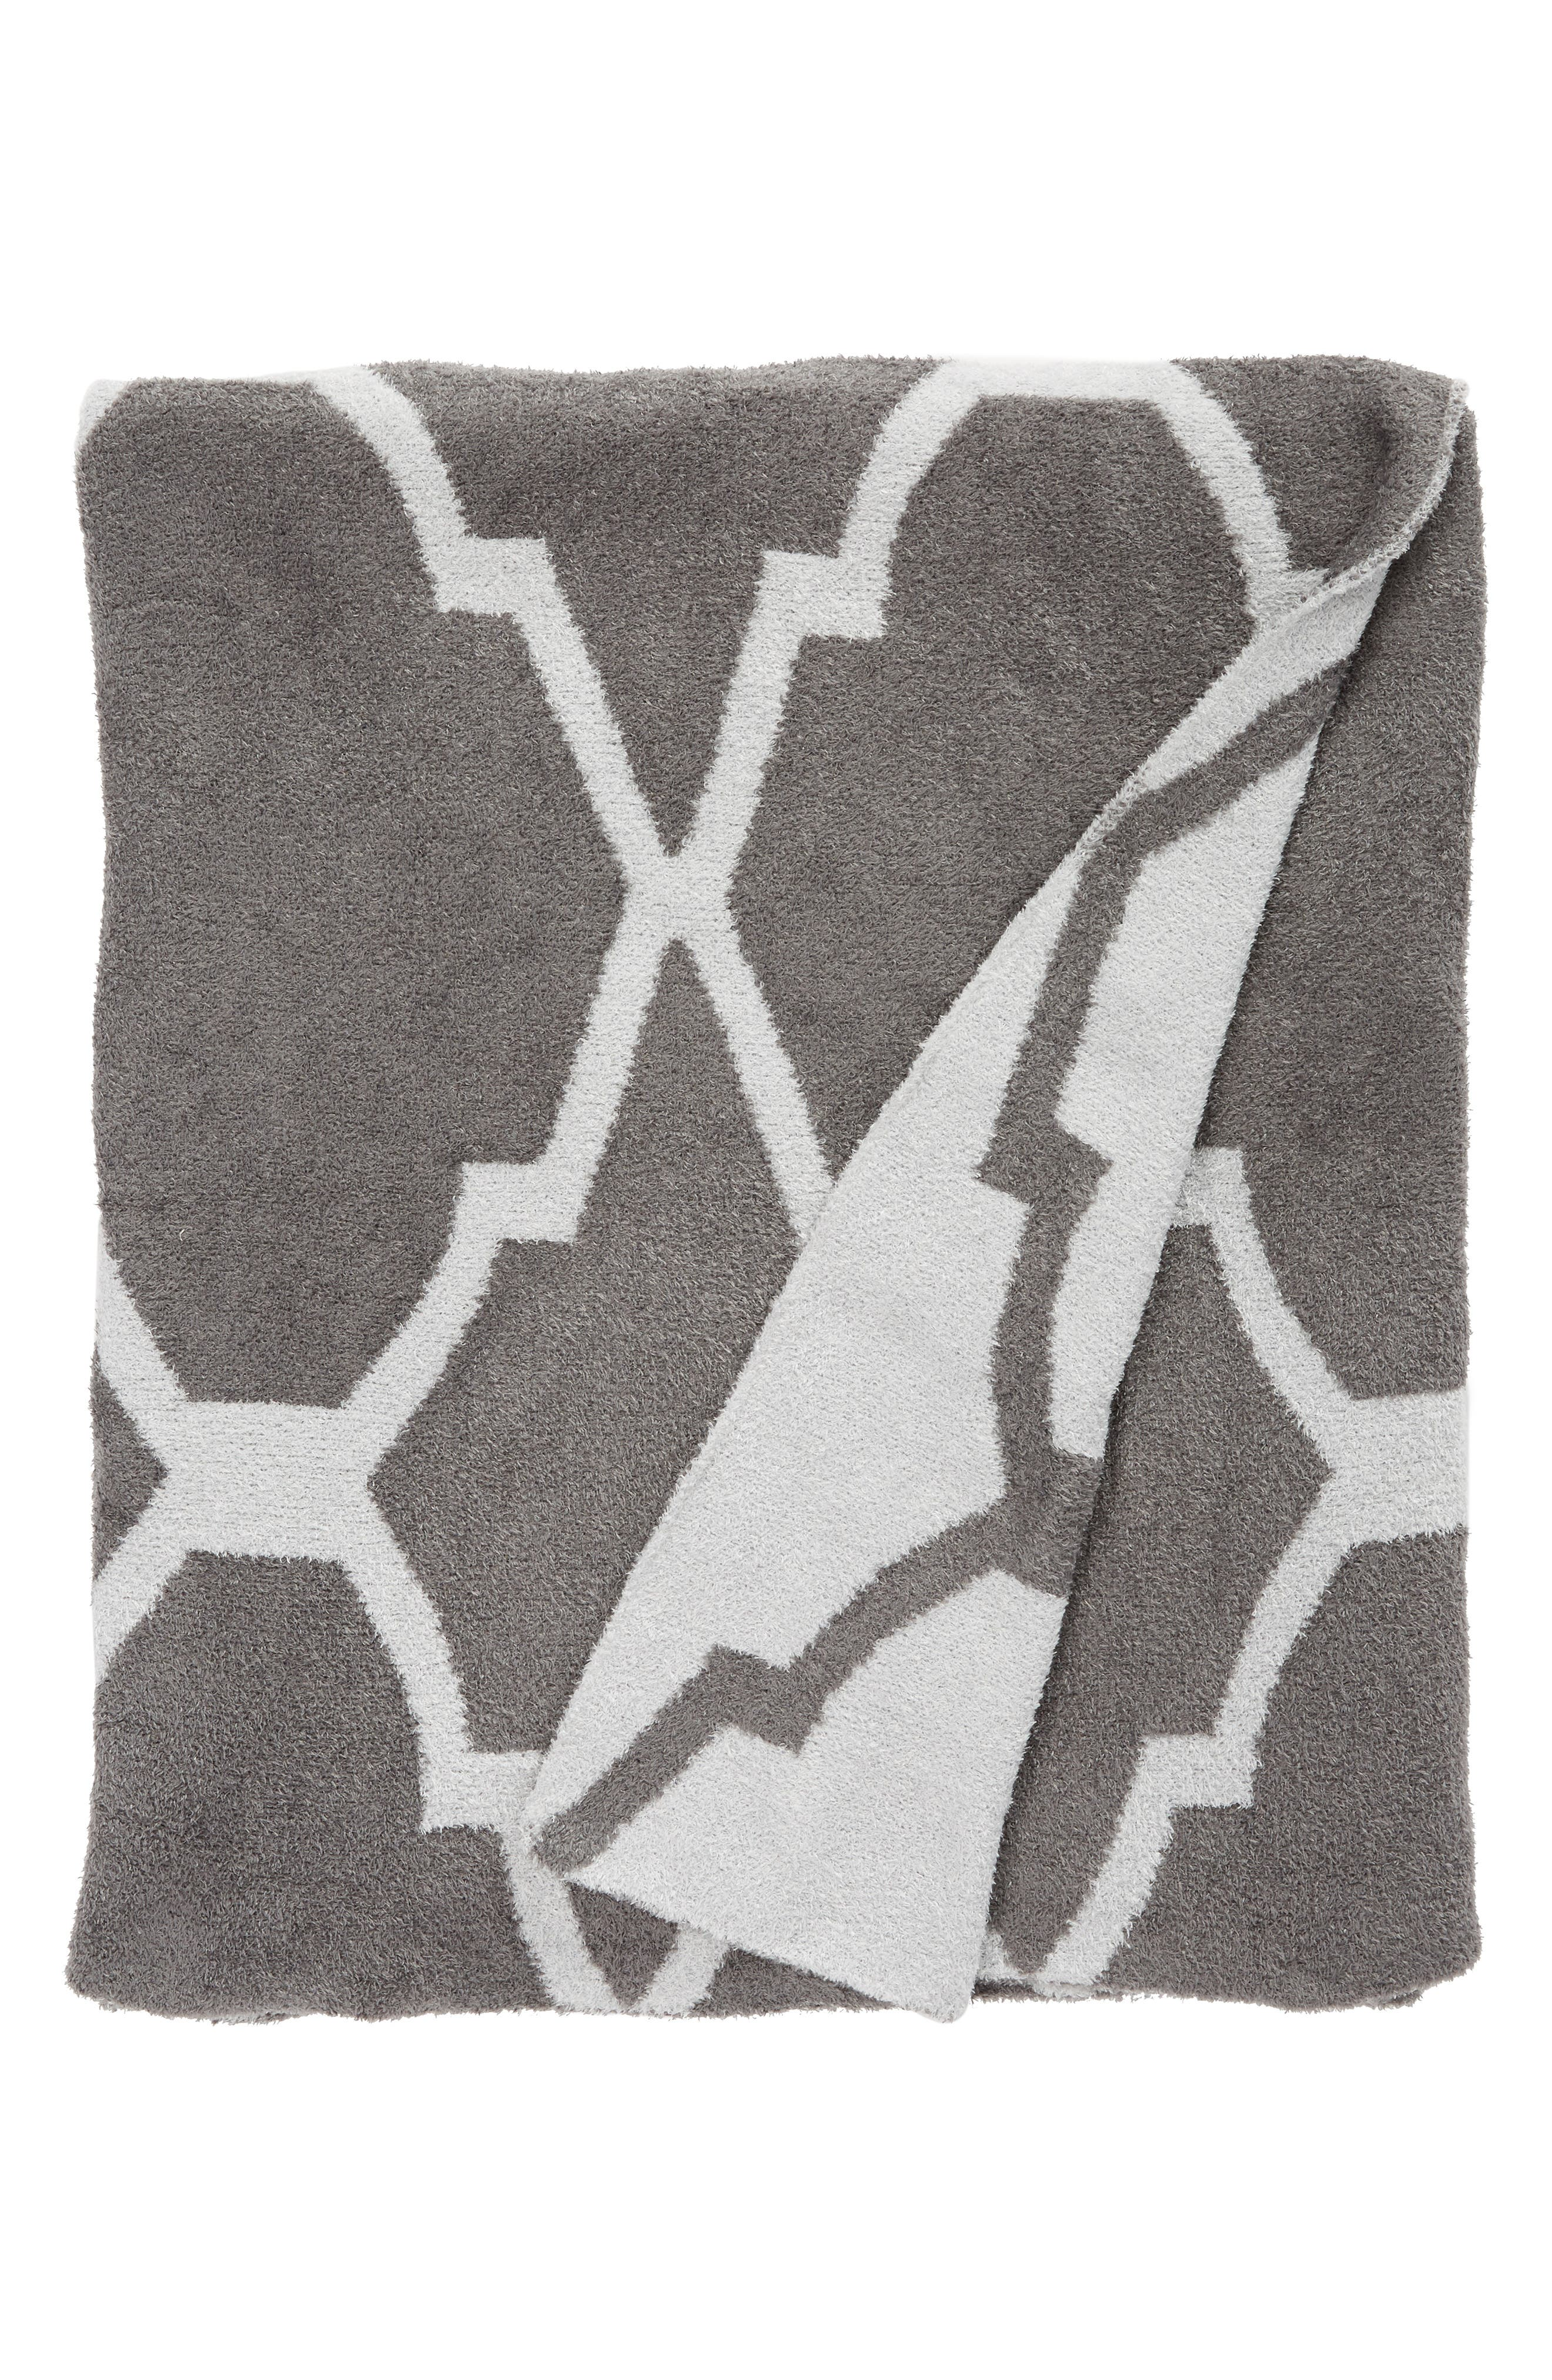 'Moroccan Dolce' Throw,                             Main thumbnail 1, color,                             CHARCOAL/ SILVER